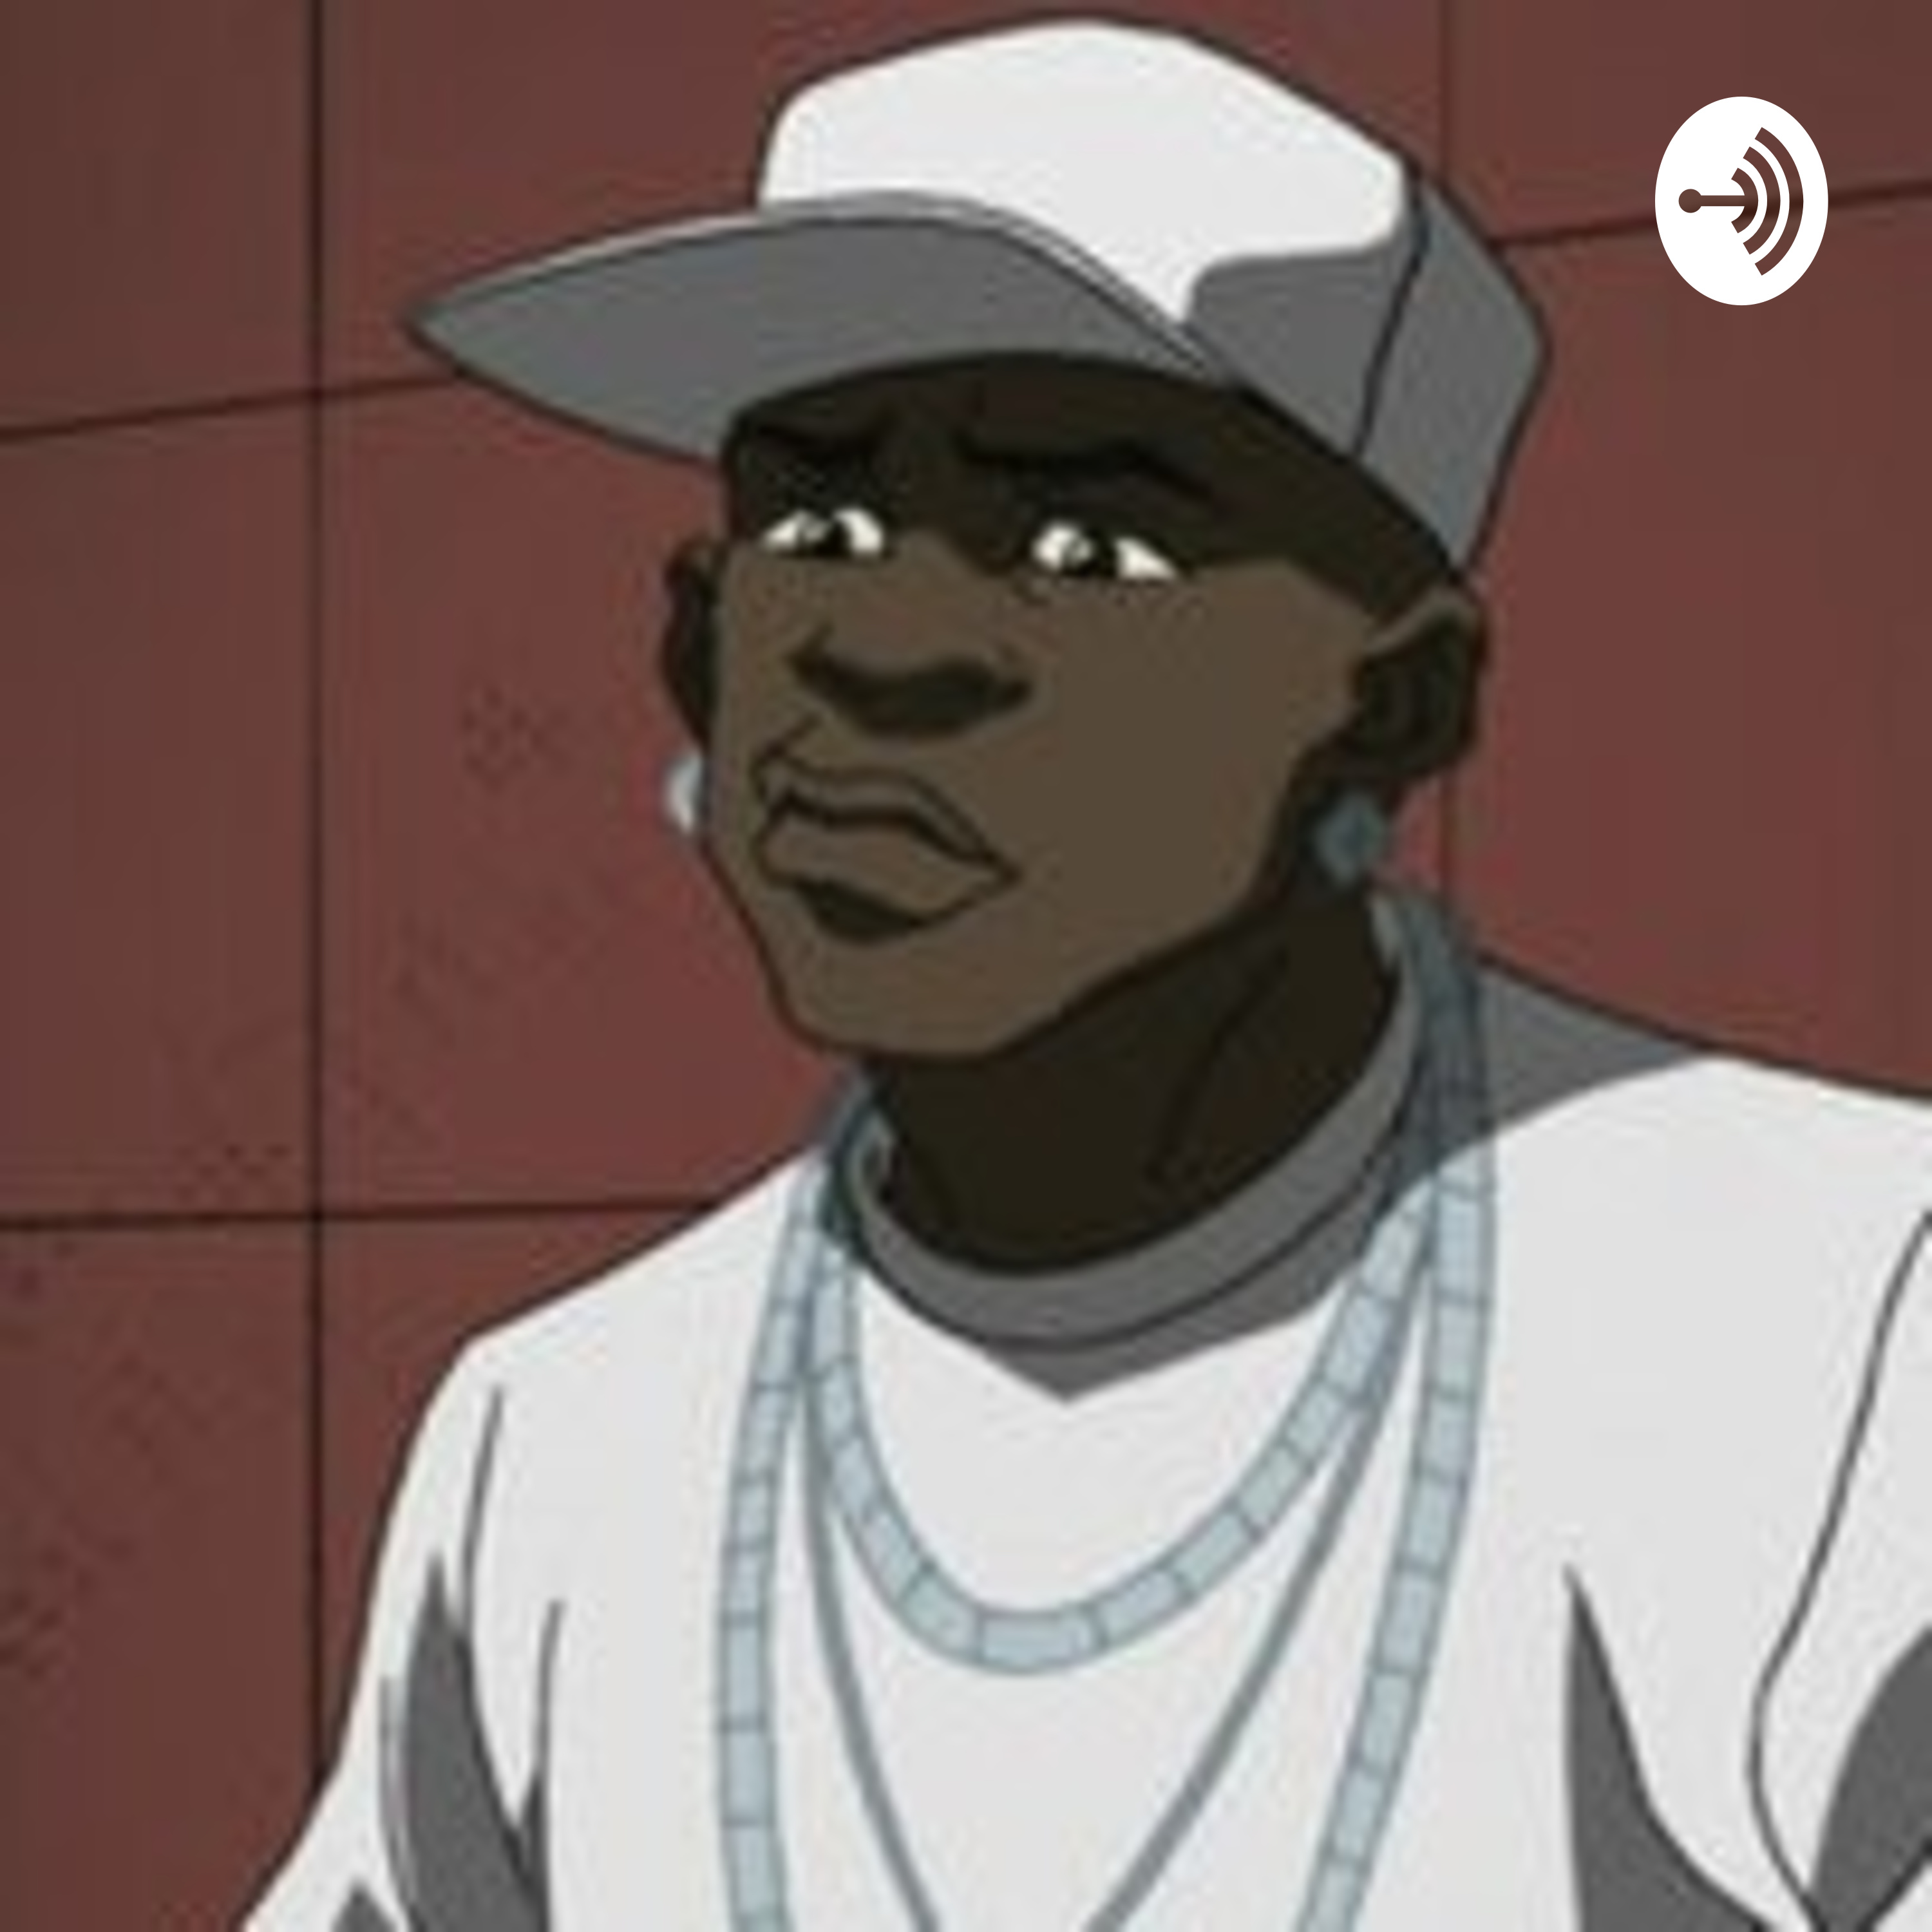 Is young thug the real life gangstalicious